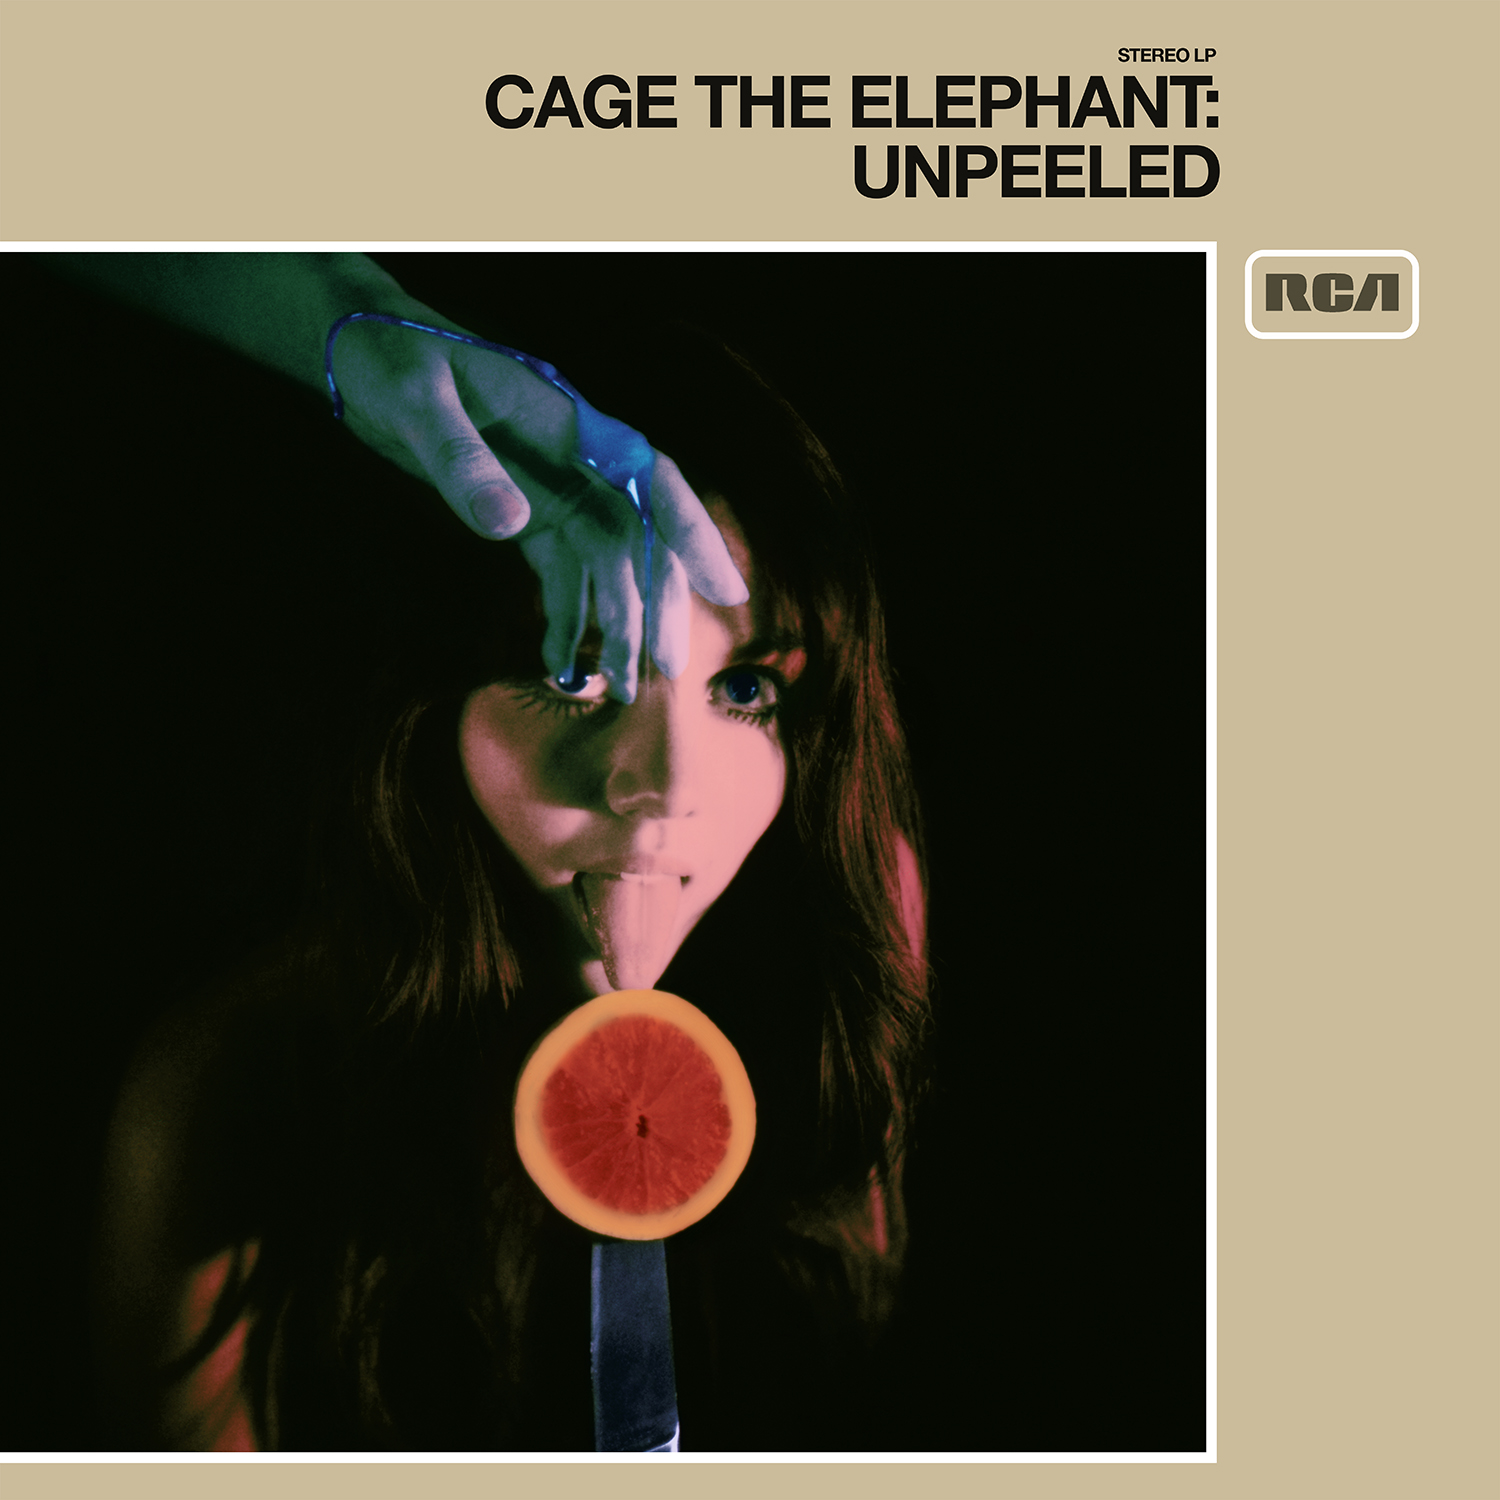 cte unpeeled cvr c6921 Cage the Elephant announce stripped down LP, Unpeeled, share video for Whole Wide World cover    watch